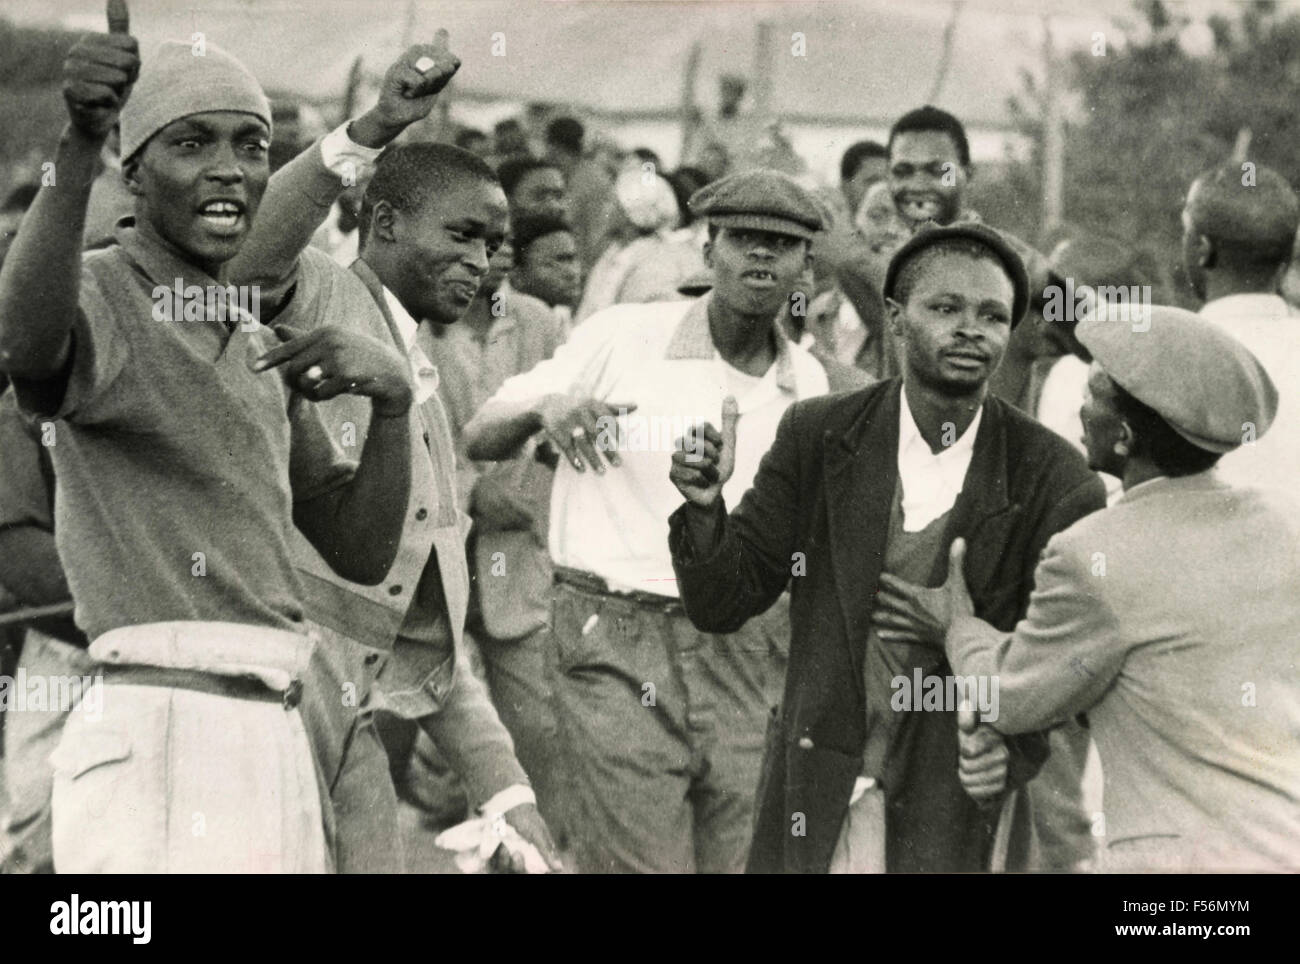 Young South Africans, Johannesburg, South Africa - Stock Image